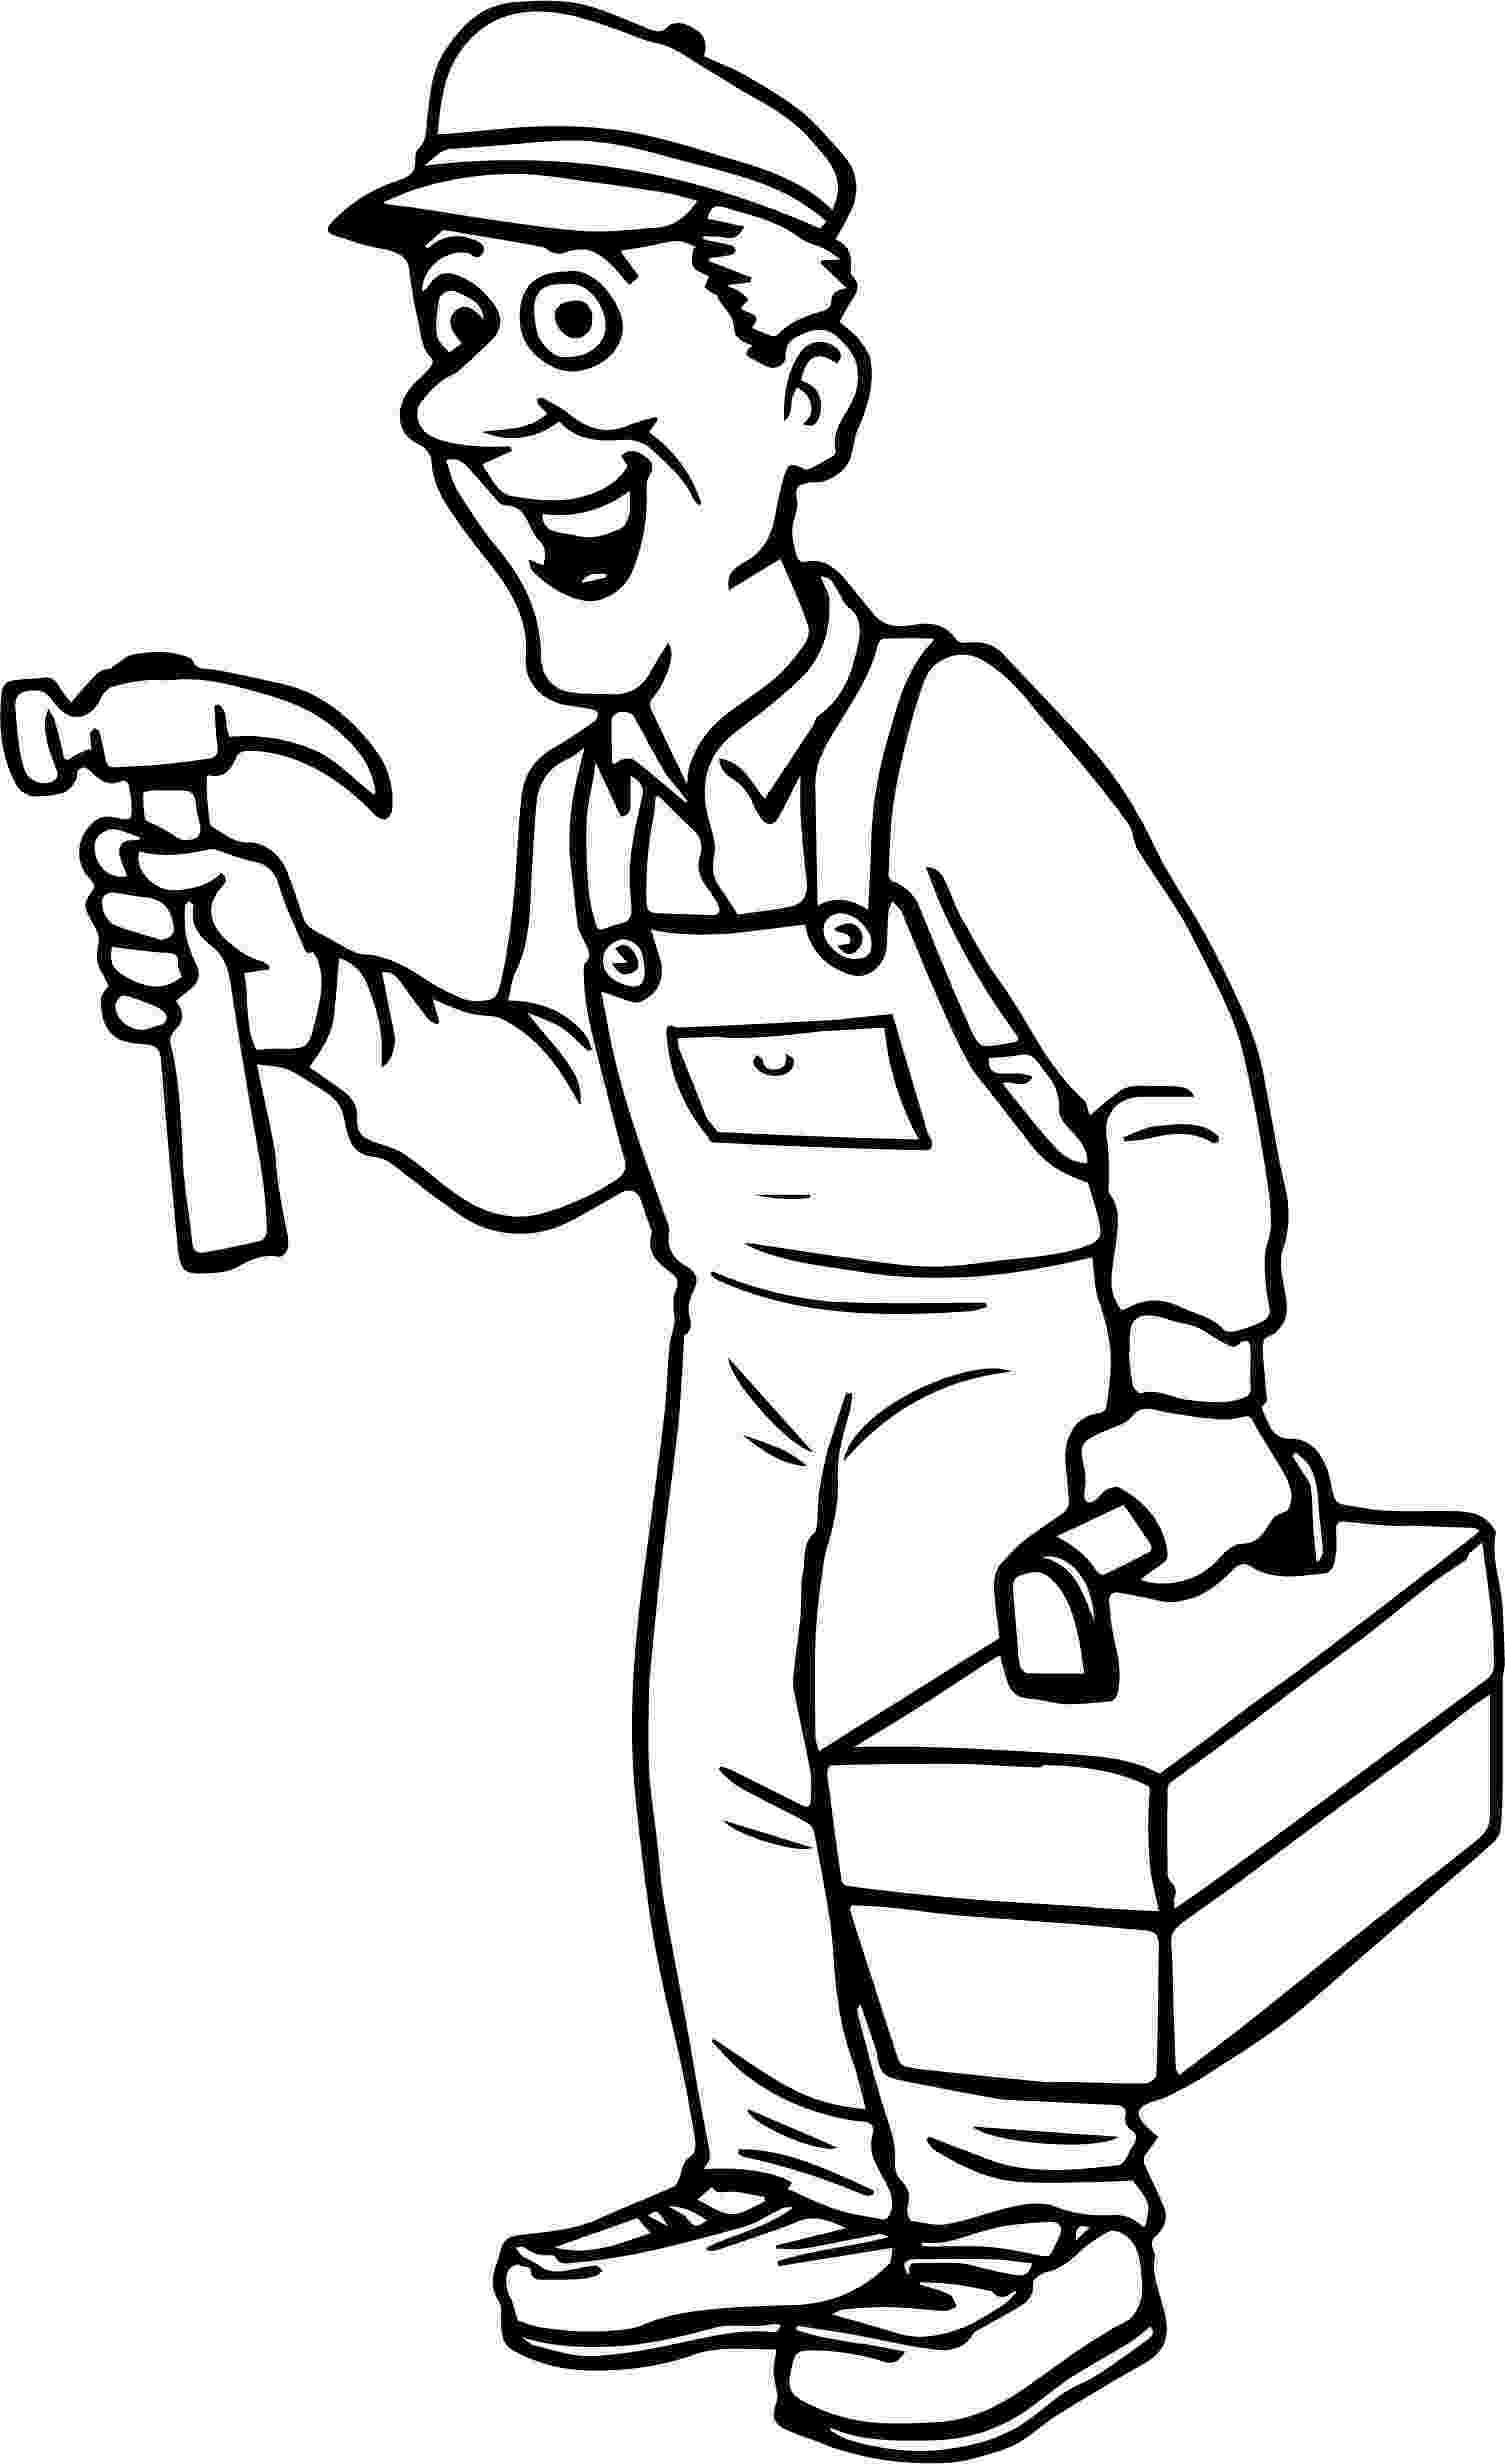 carpenter coloring pages carpenter right time coloring page wecoloringpagecom carpenter coloring pages